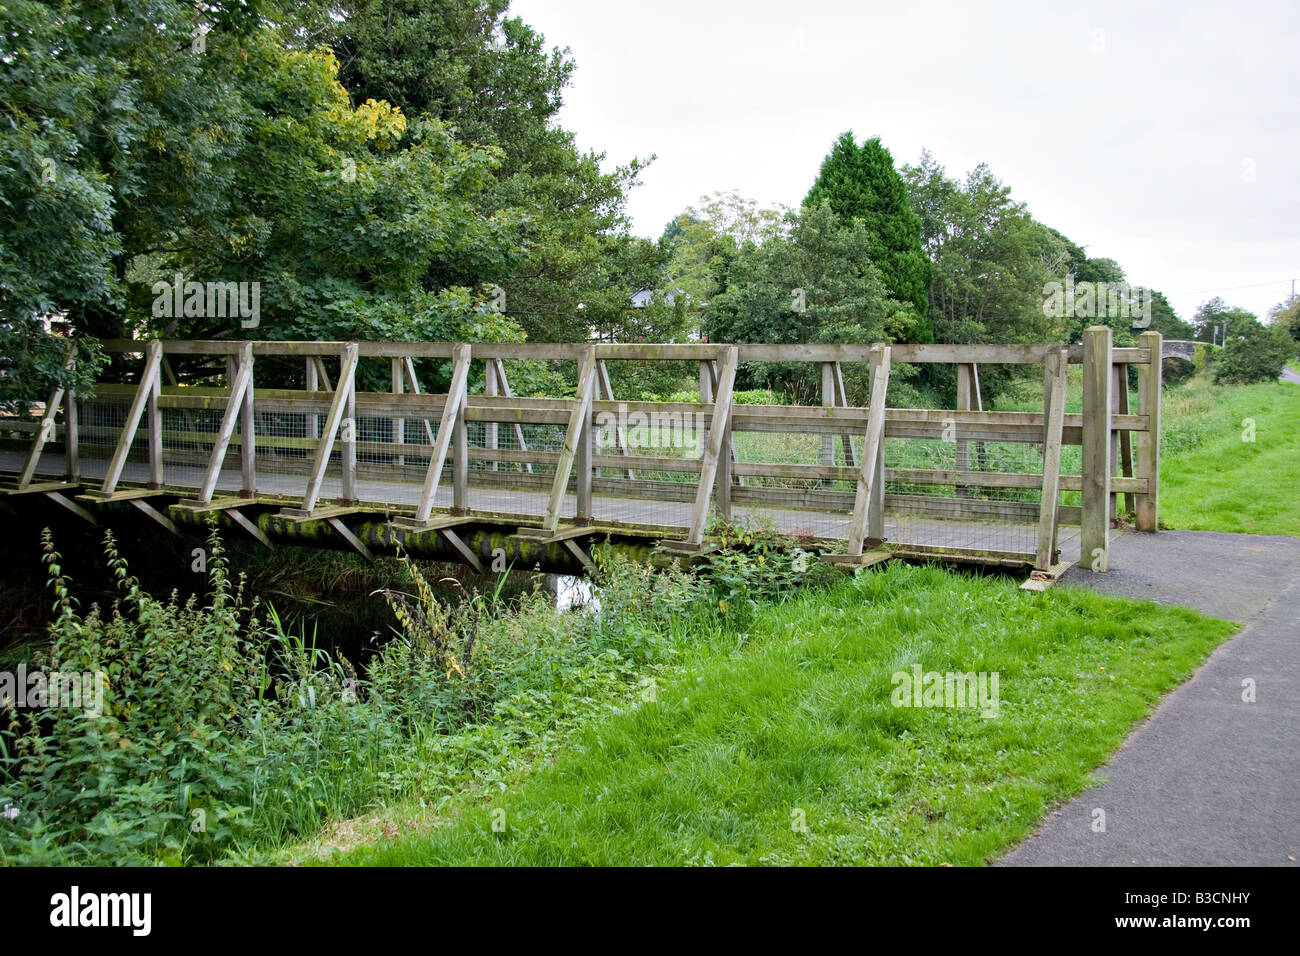 The bridge over the canal at the Scarva visitor center, county down - Stock Image